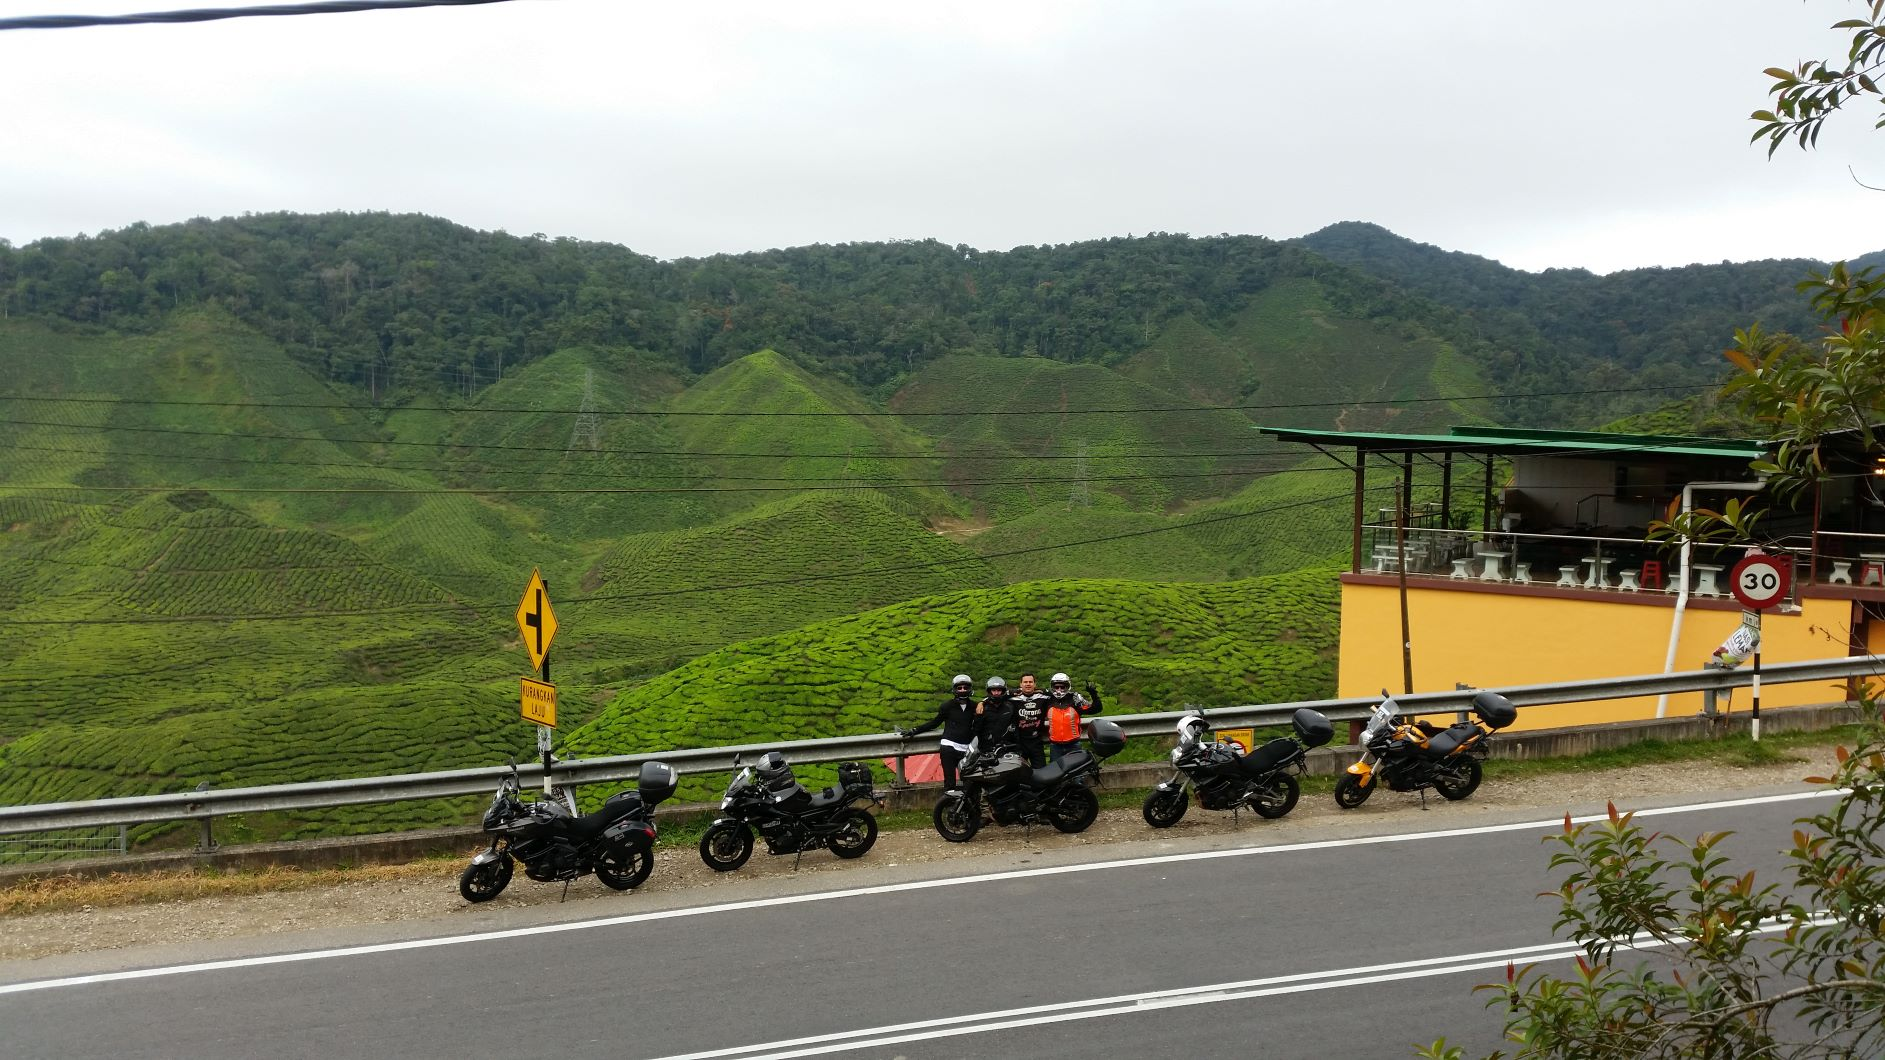 And Cameron Highlands is not to be missed